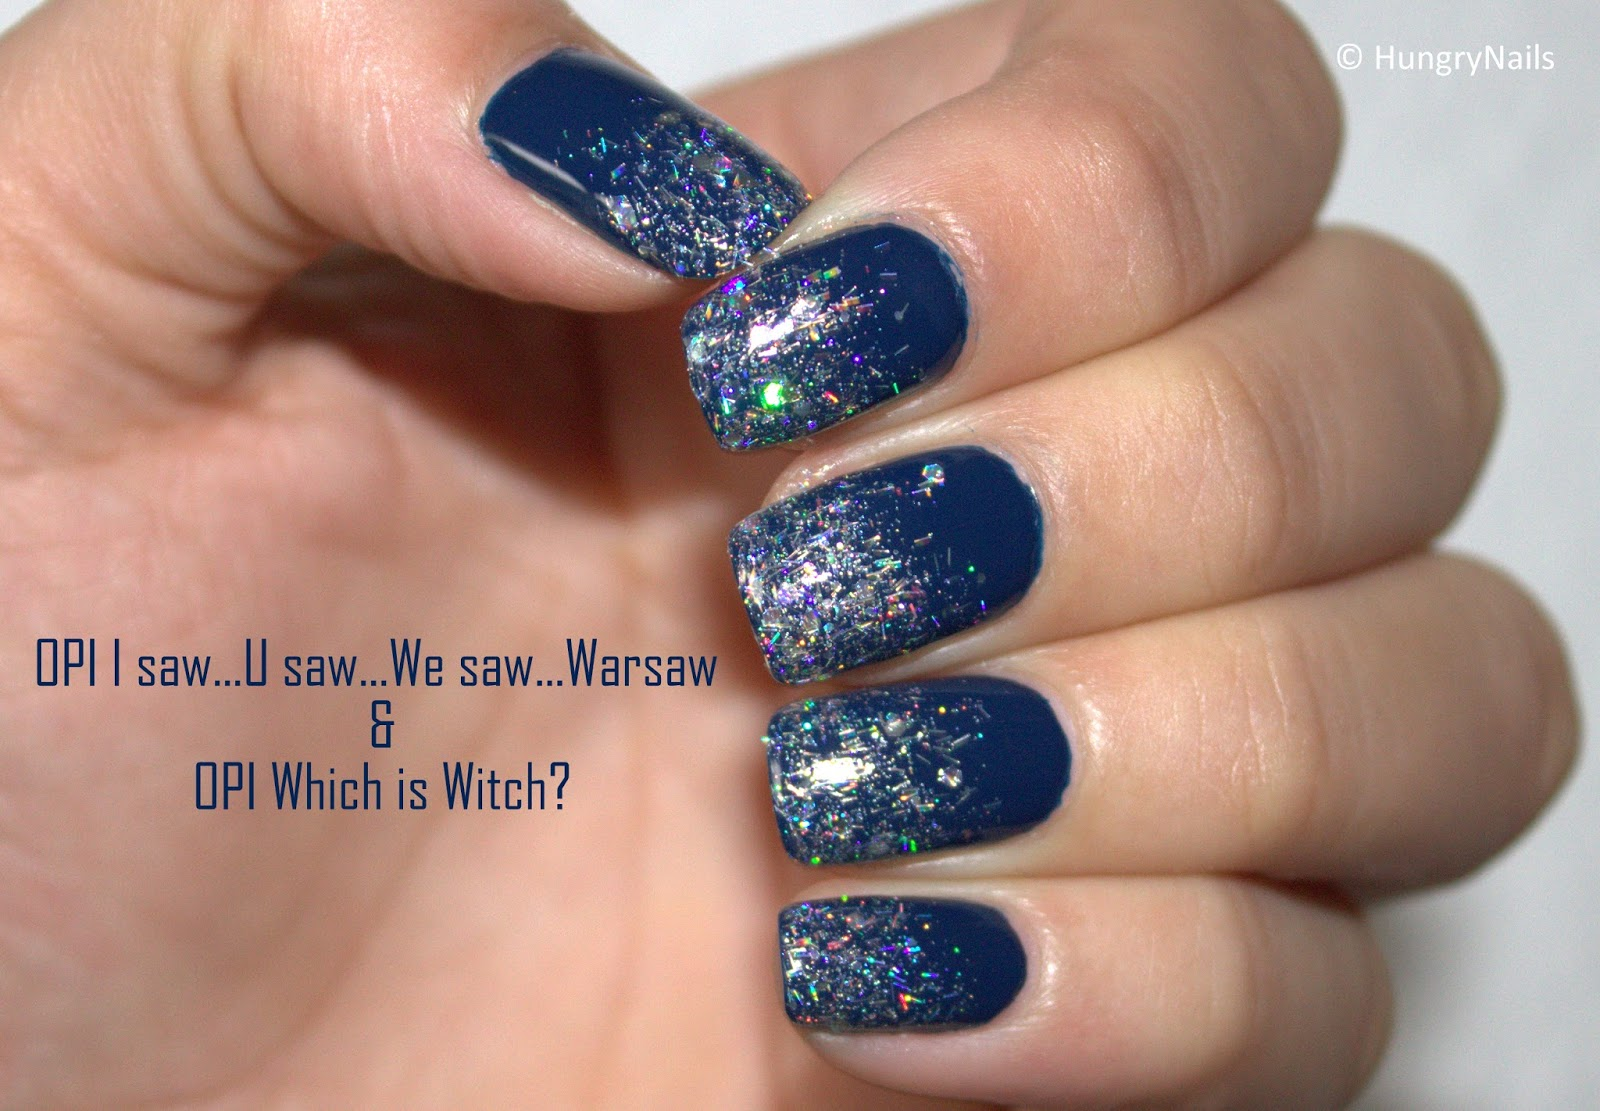 OPI Glitter Gradient zum Blue Friday - HungryNails Blog | Die bunte ...